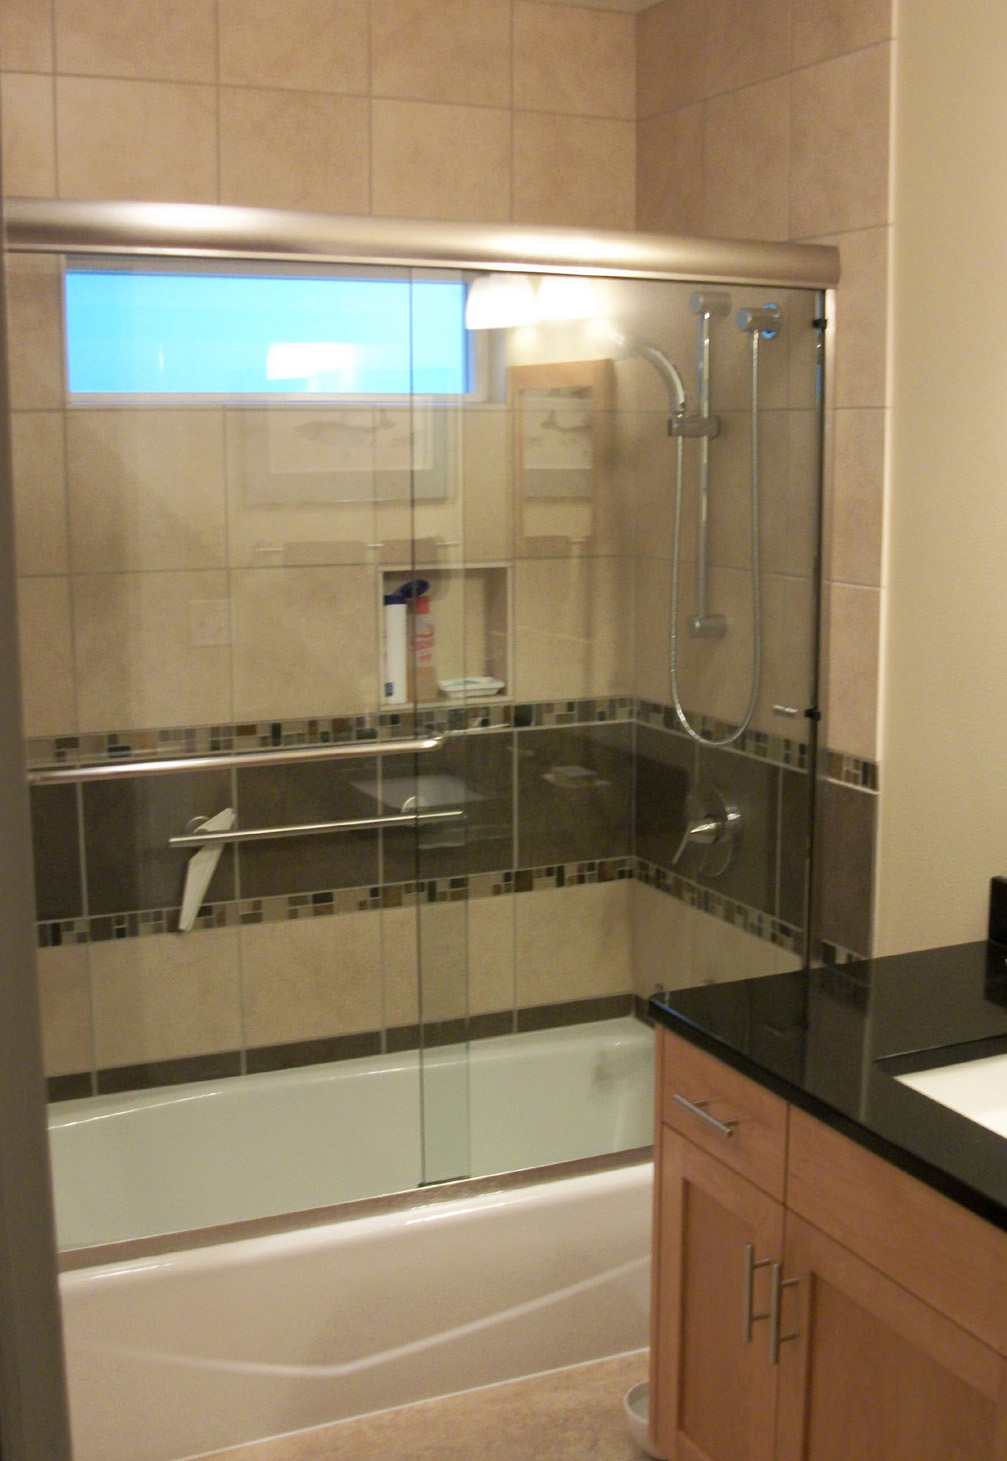 Small Bathroom Tub Shower Glass 1007 x 1461